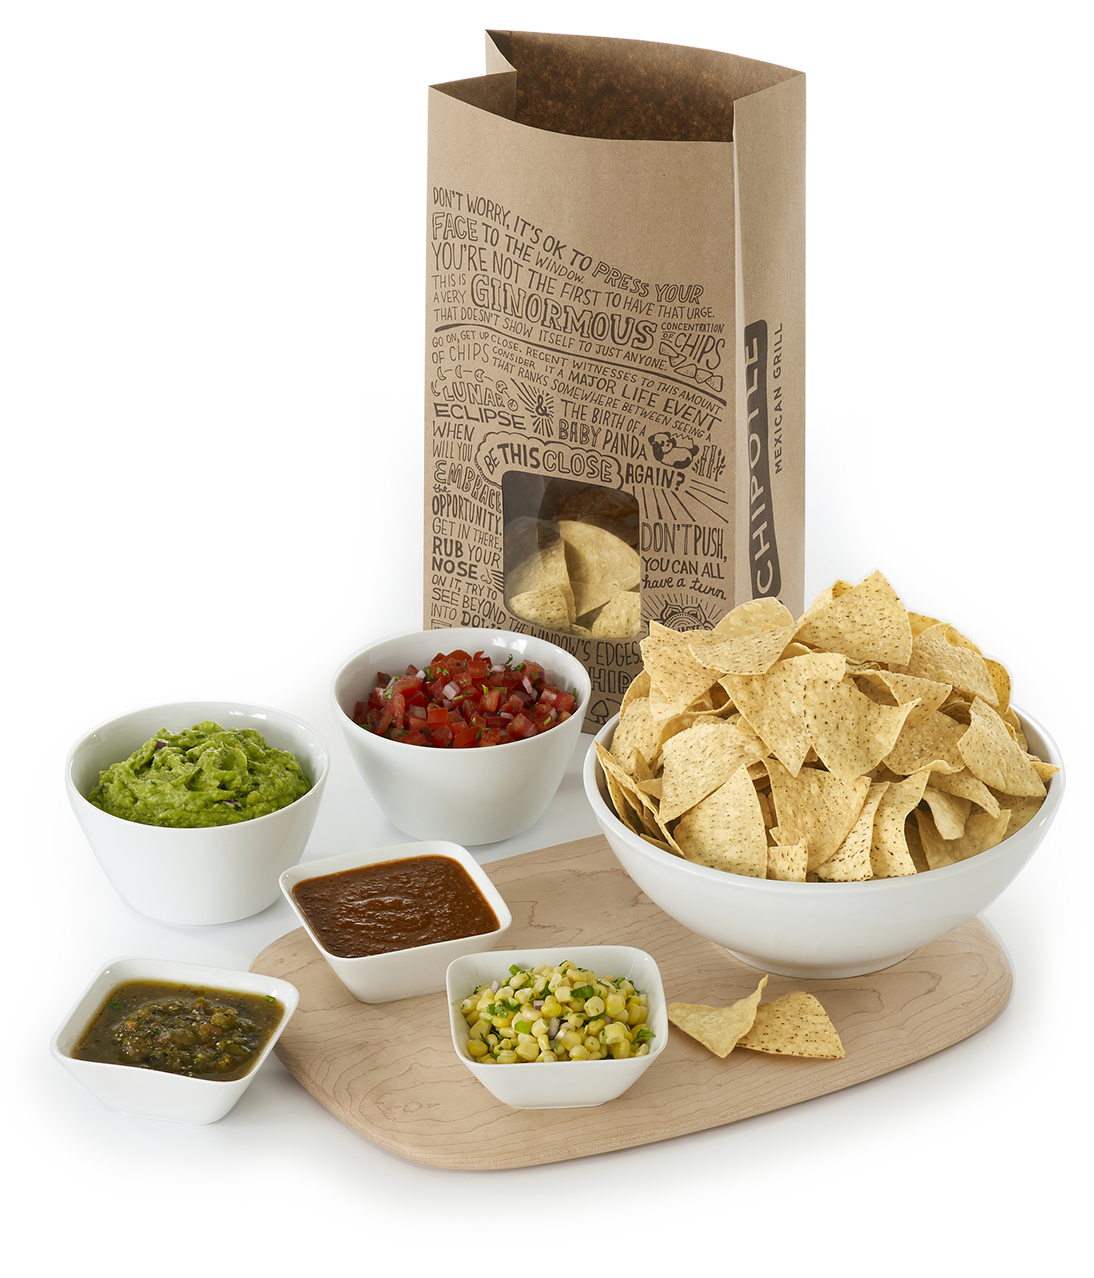 Chipotle catering spread. Salsa and chips png picture transparent stock